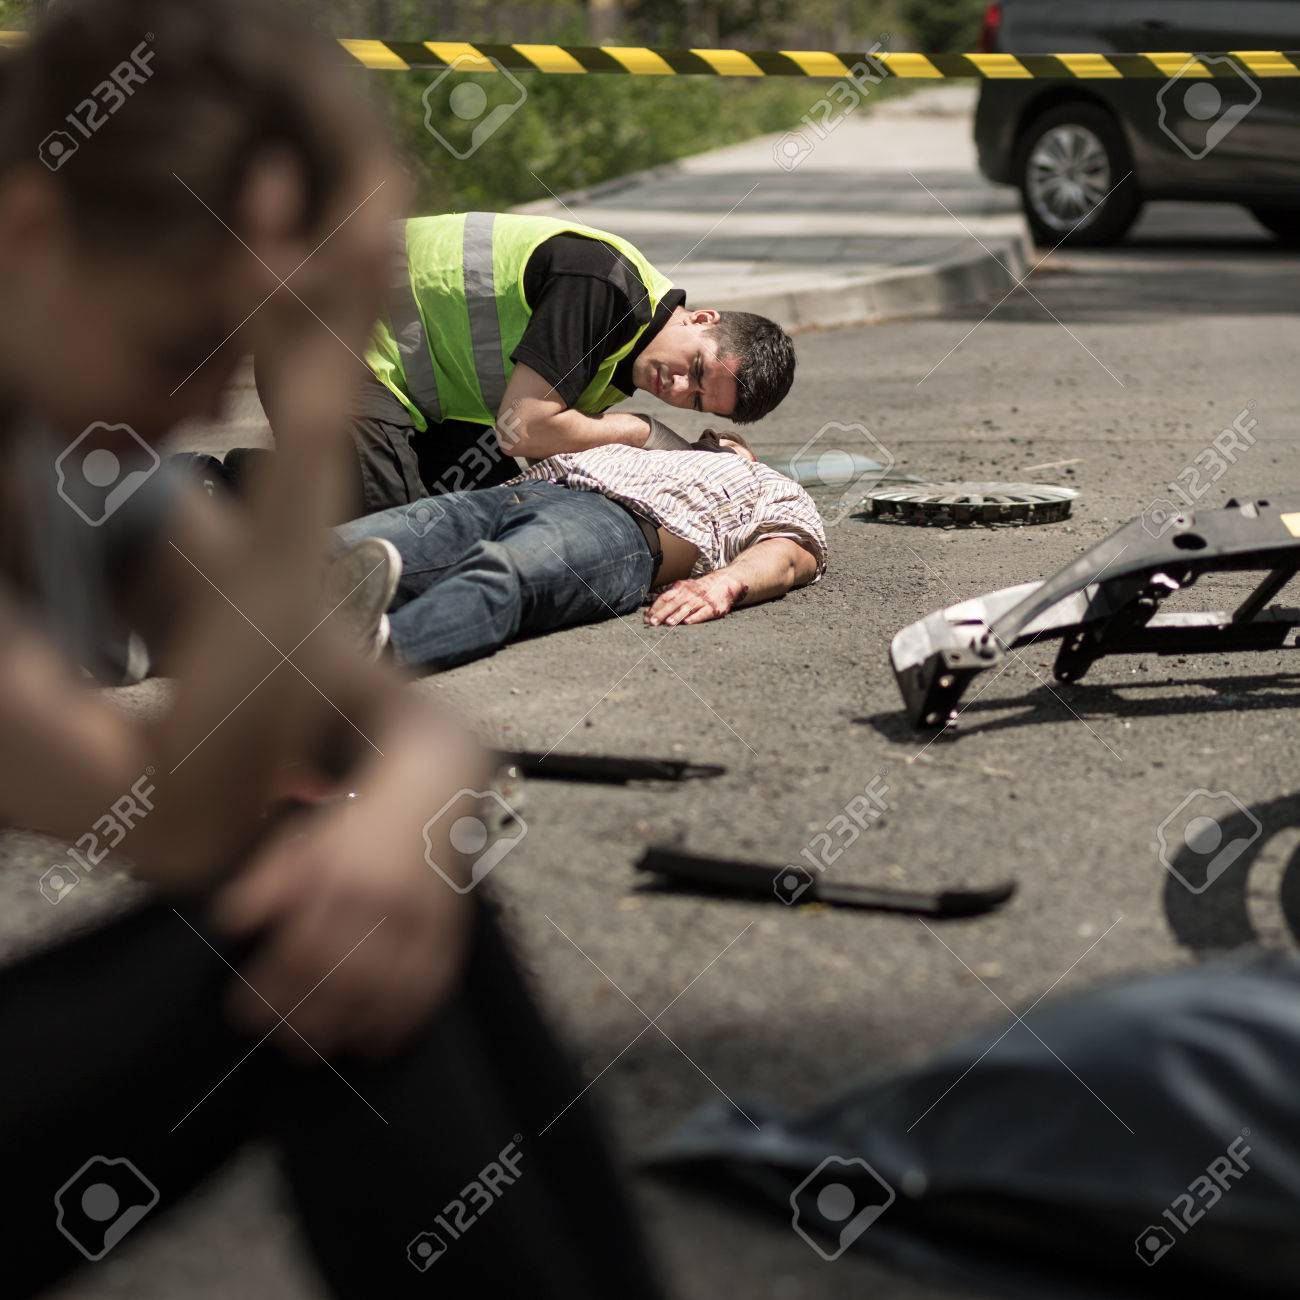 Despair Young Driver At Road Accident Scene Stock Photo, Picture And ...